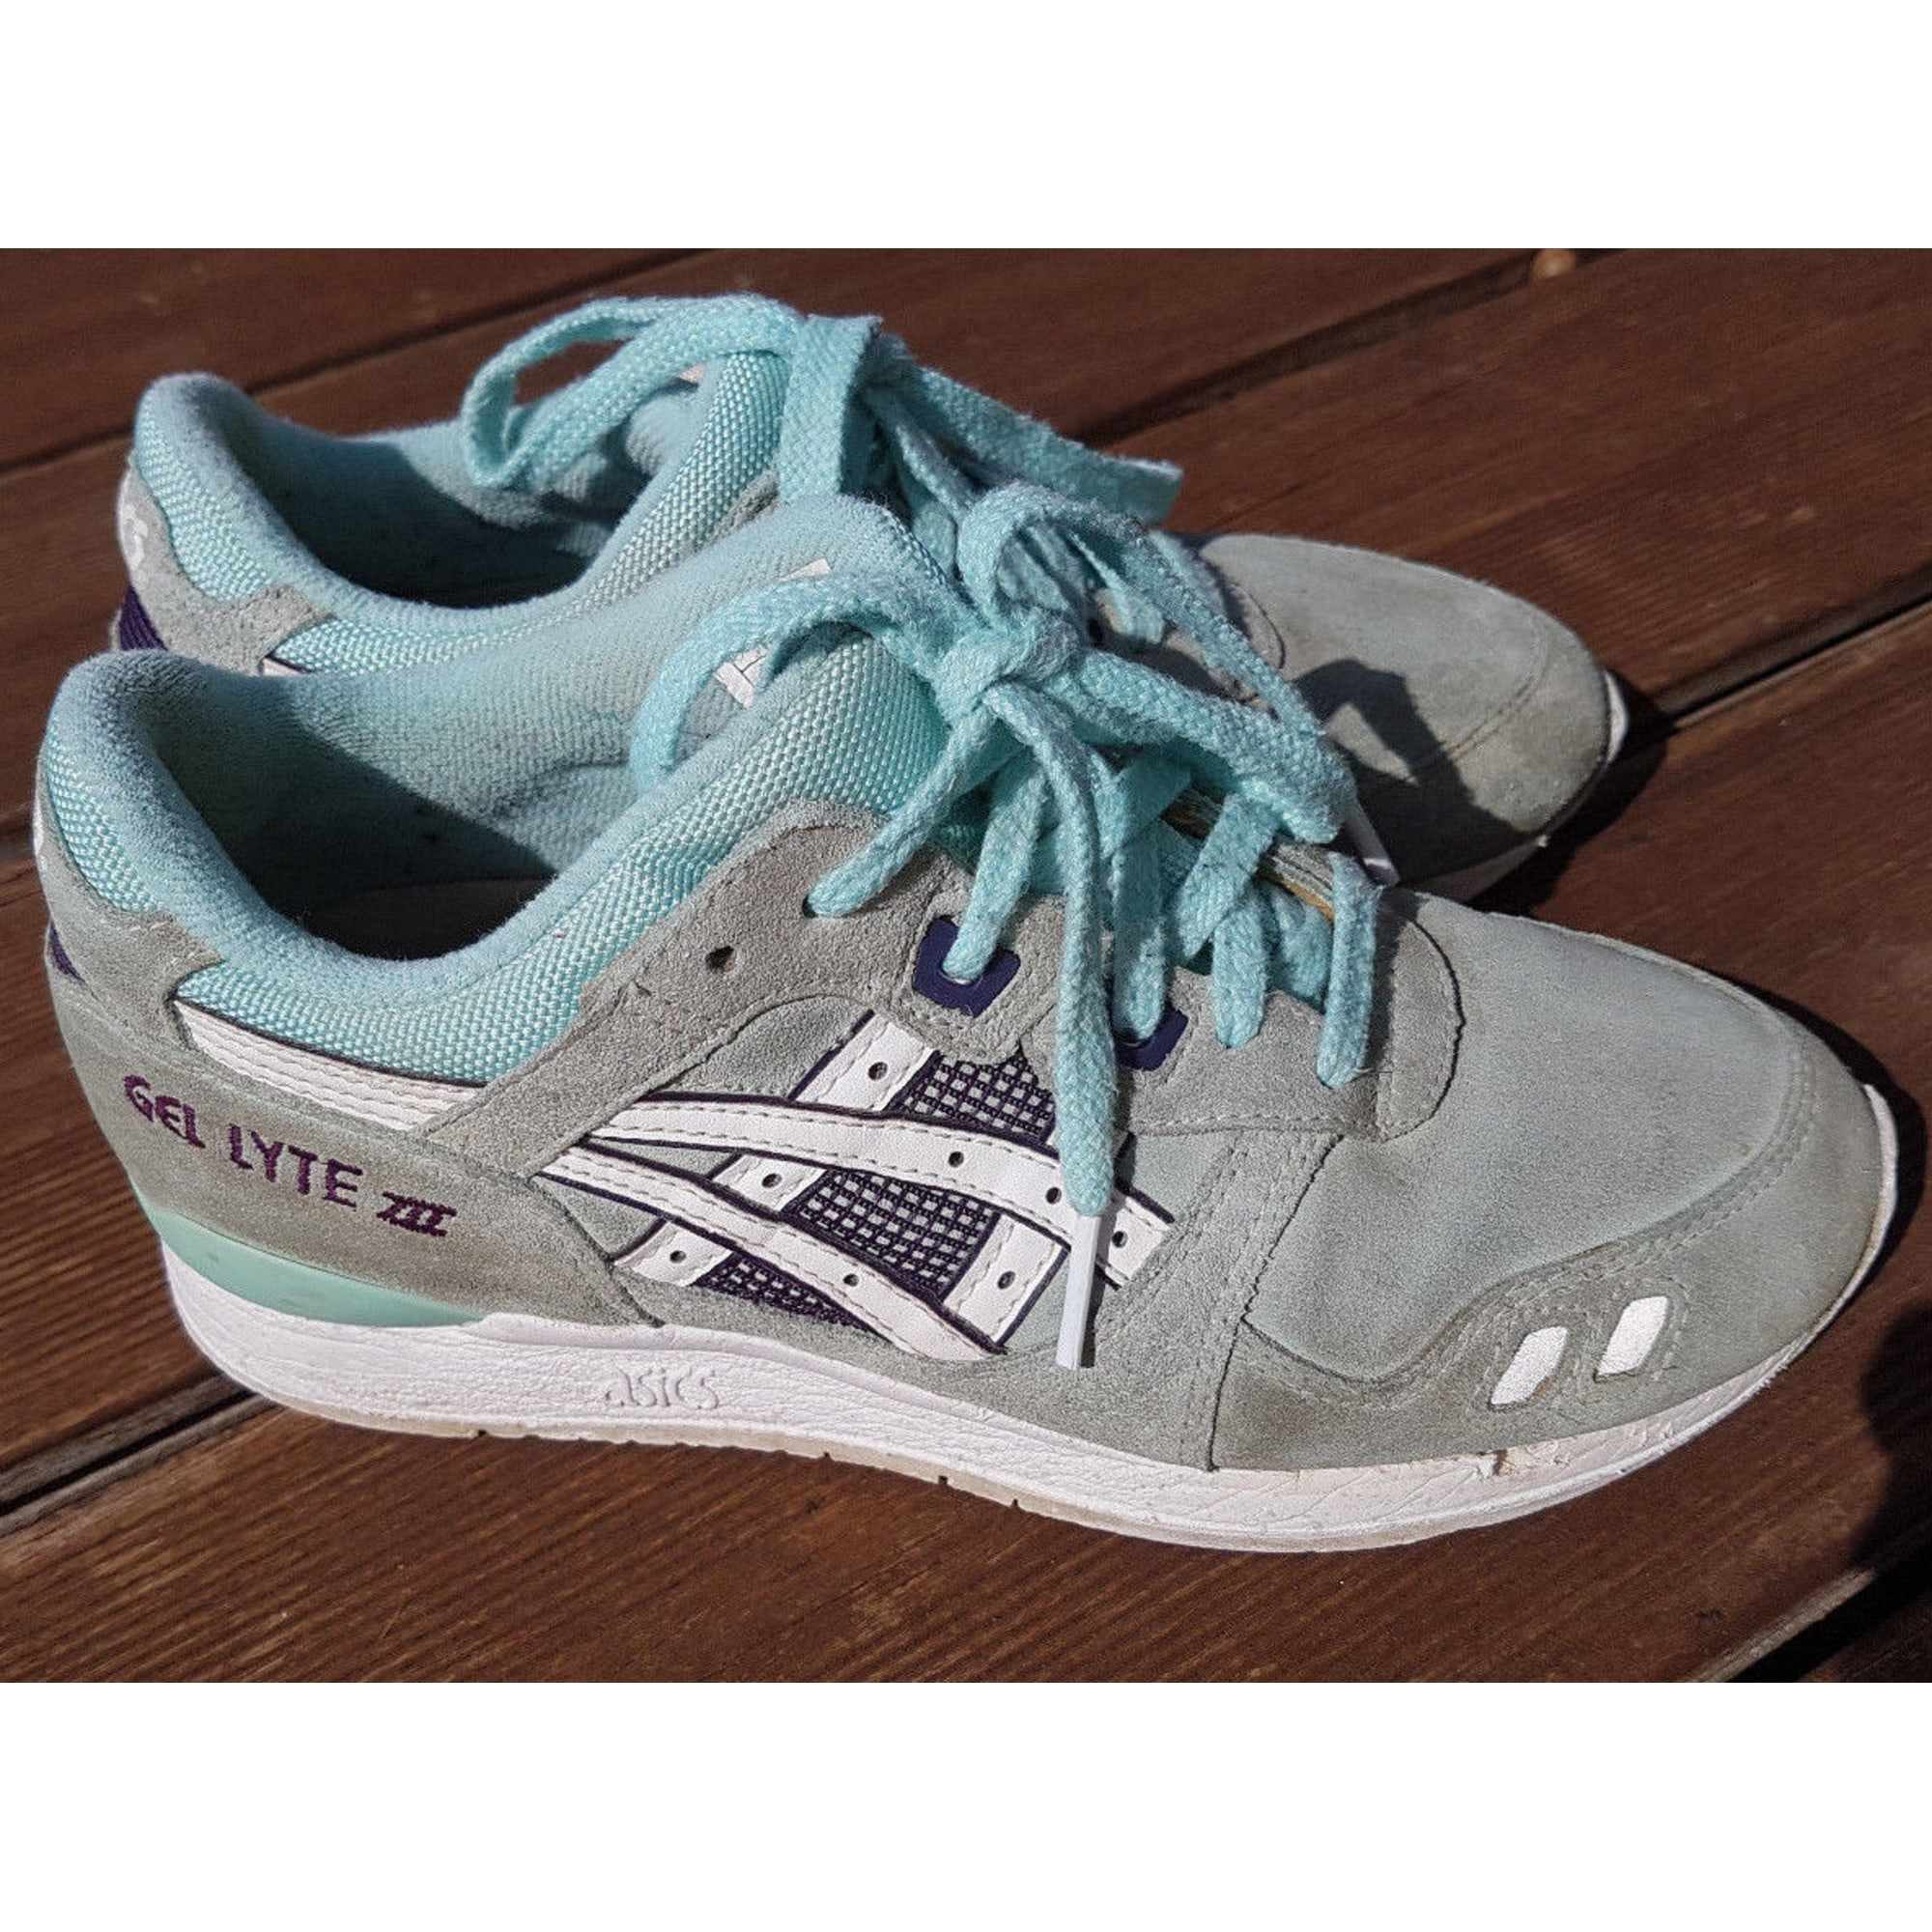 baskets asics bleu